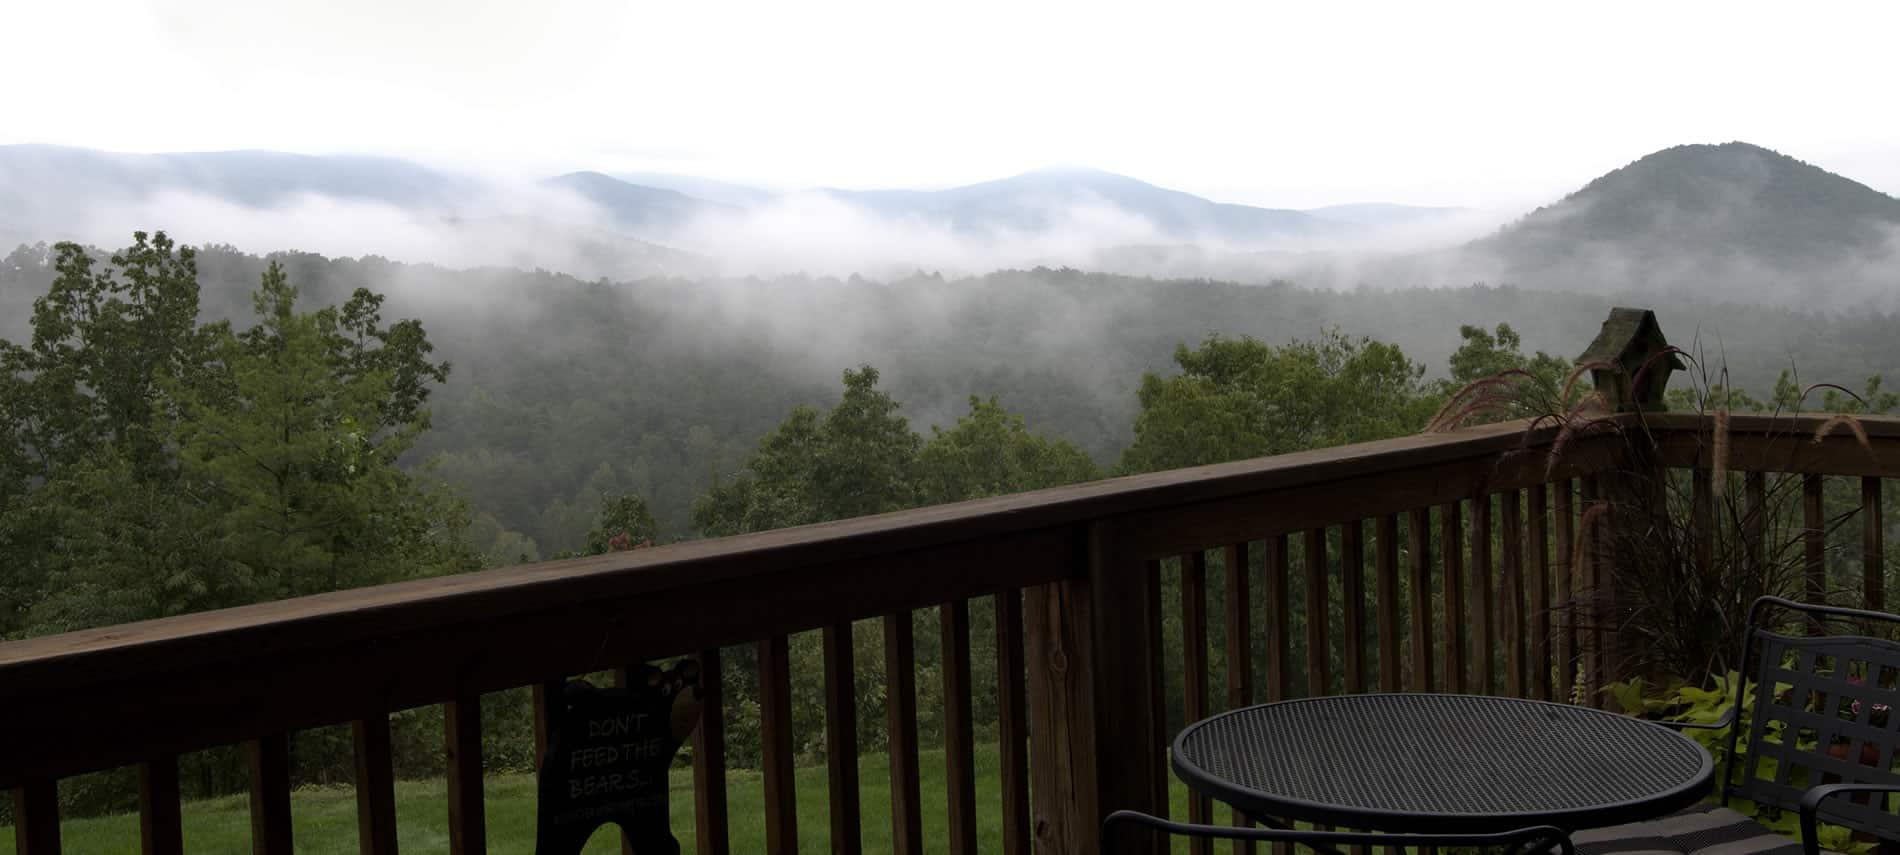 Overlooking the mountains with morning fog from the deck